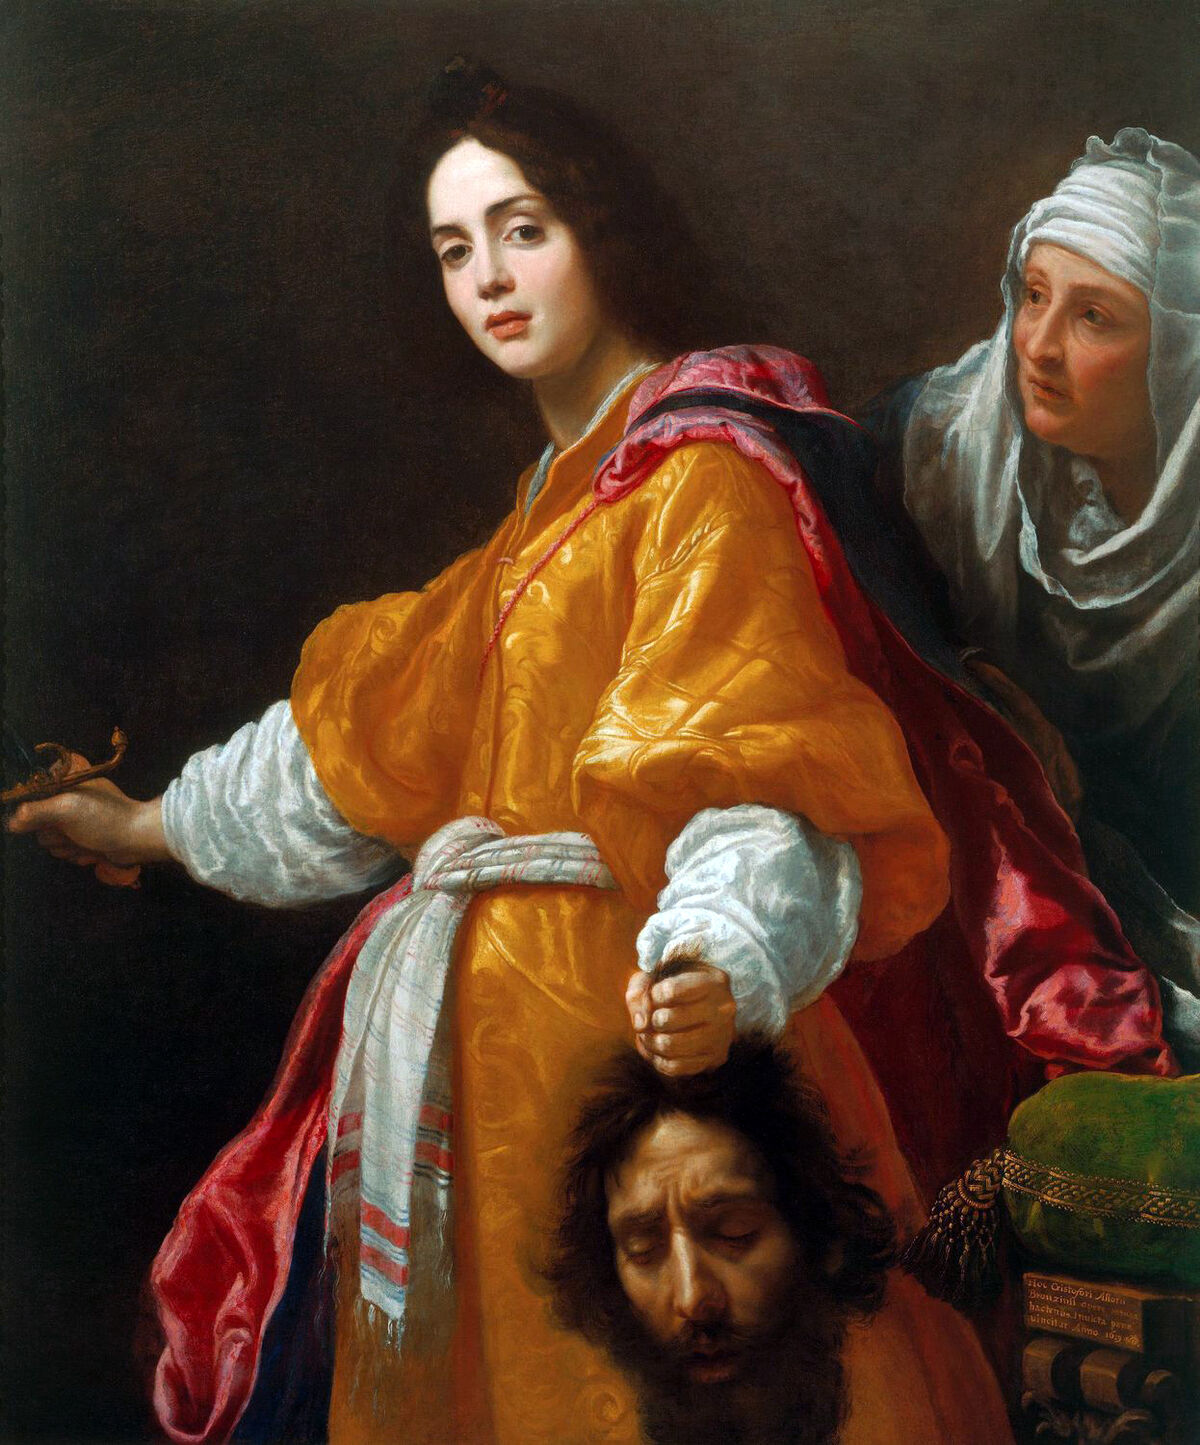 Cristofano Allori, Judith with the Head of Holophernes, 1613. Image via Wikimedia Commons.